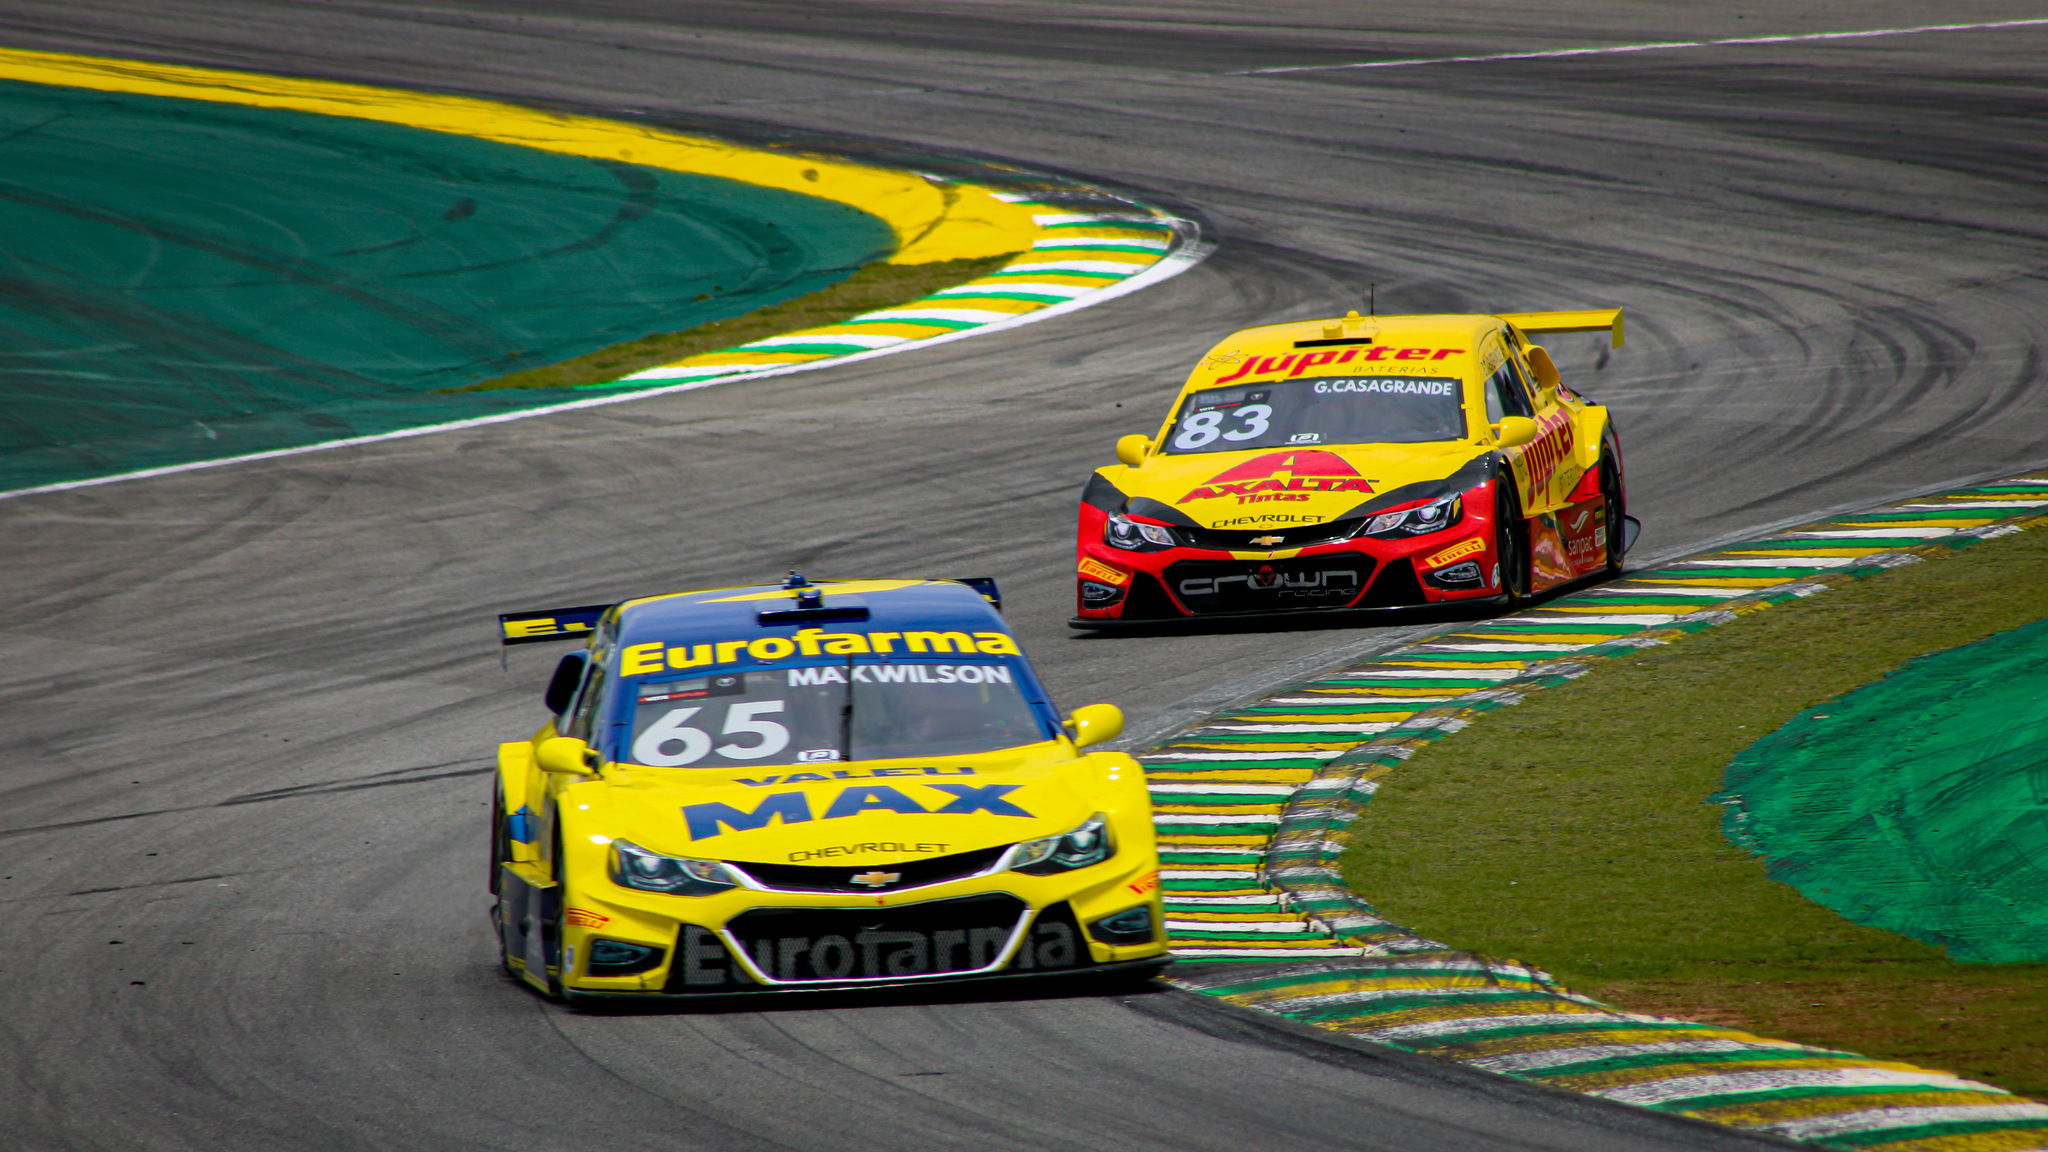 Foto de Galeria do treino classificatória para Grande Final da Stock Car em Interlagos, por Deborah Almeida